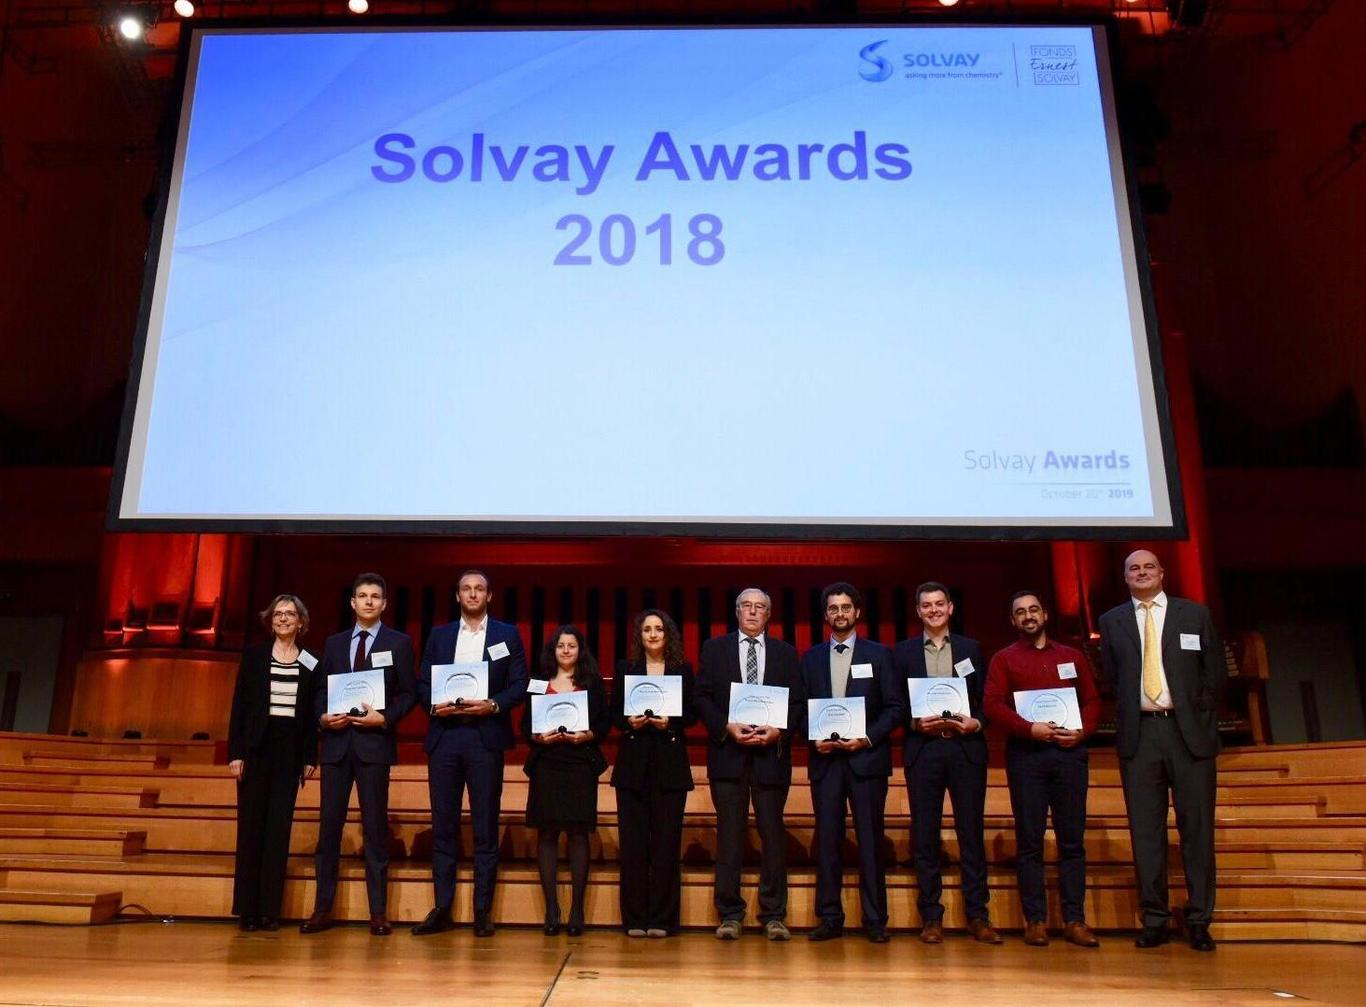 Solvay Awards 2018